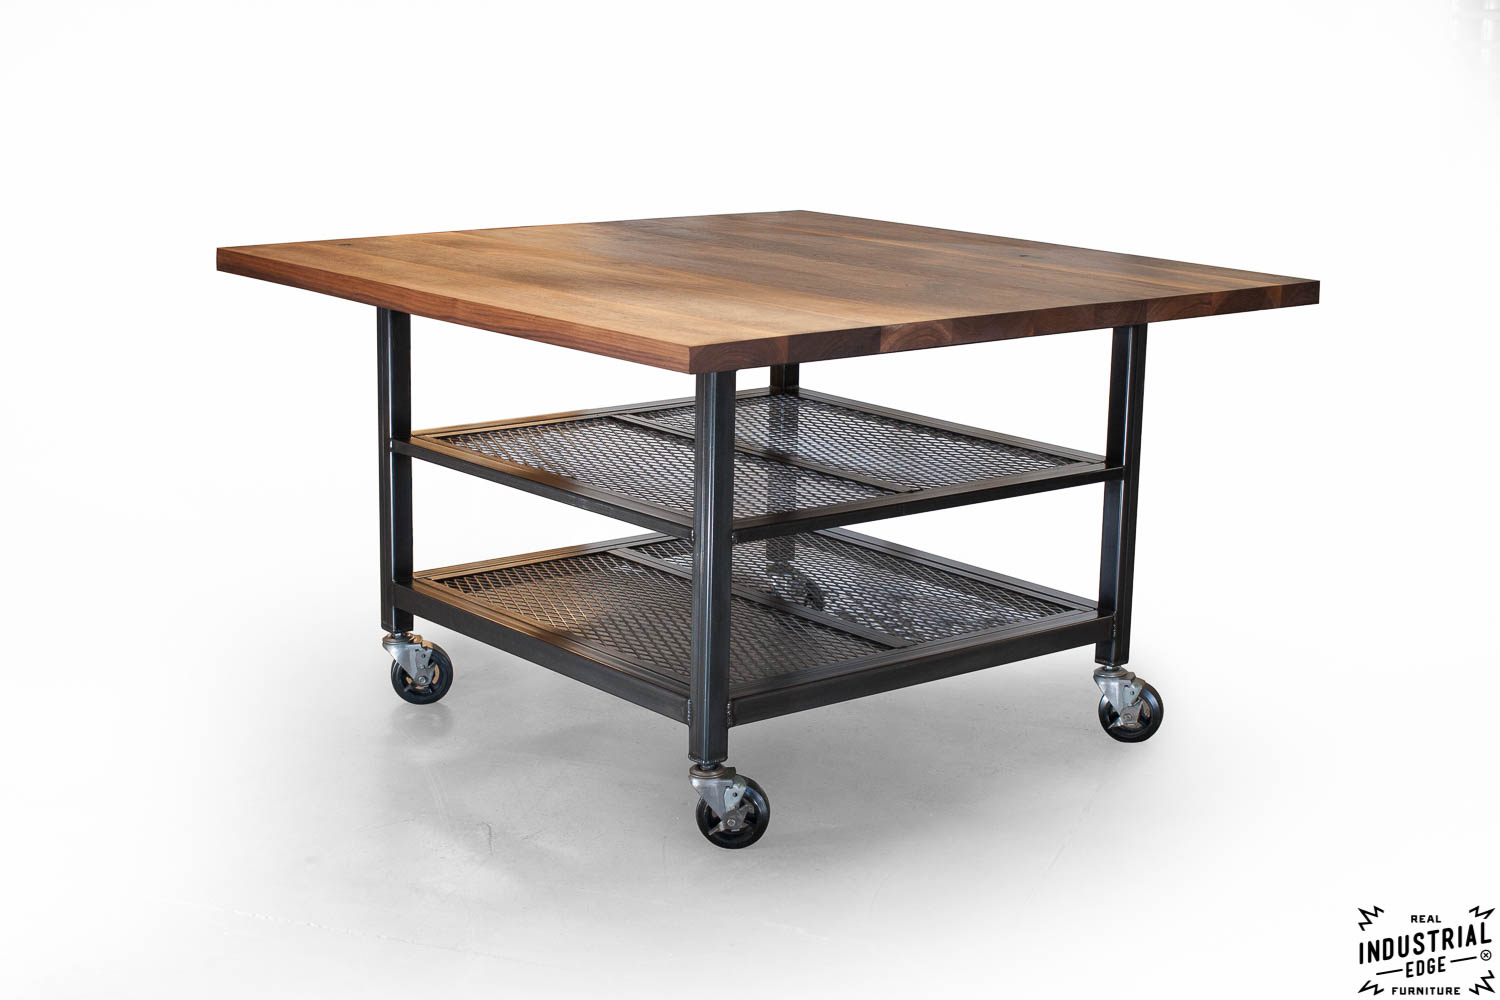 walnut steel industrial kitchen island dining table industrial kitchen table Walnut Steel Industrial Kitchen Island Dining Table